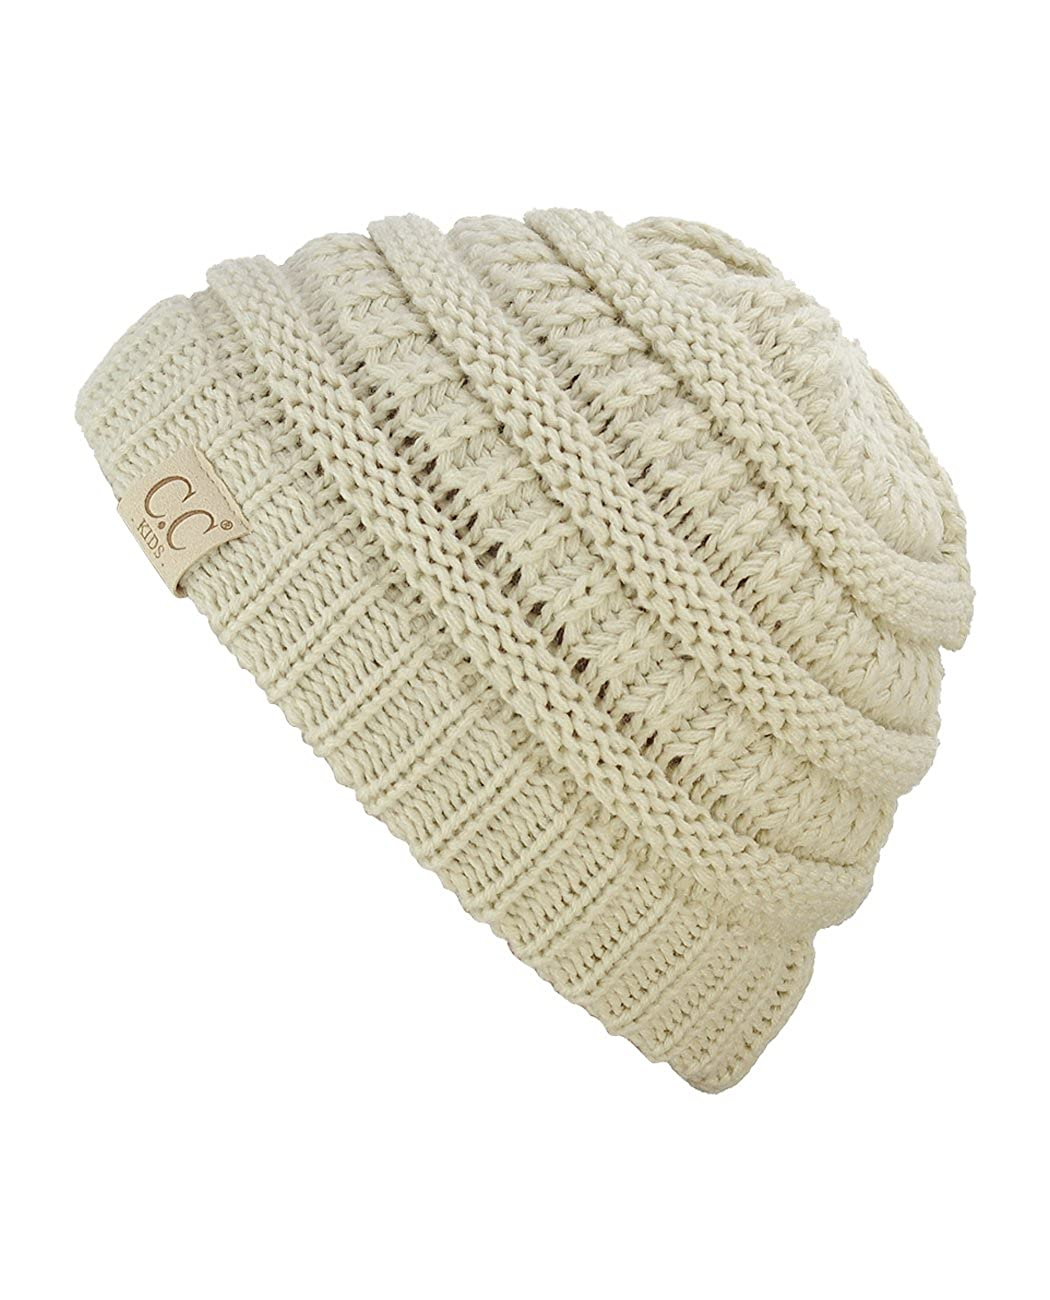 C.C NYFASHION101 Kids Cute Warm and Comfy Childrens Knit Ski Beanie Hat